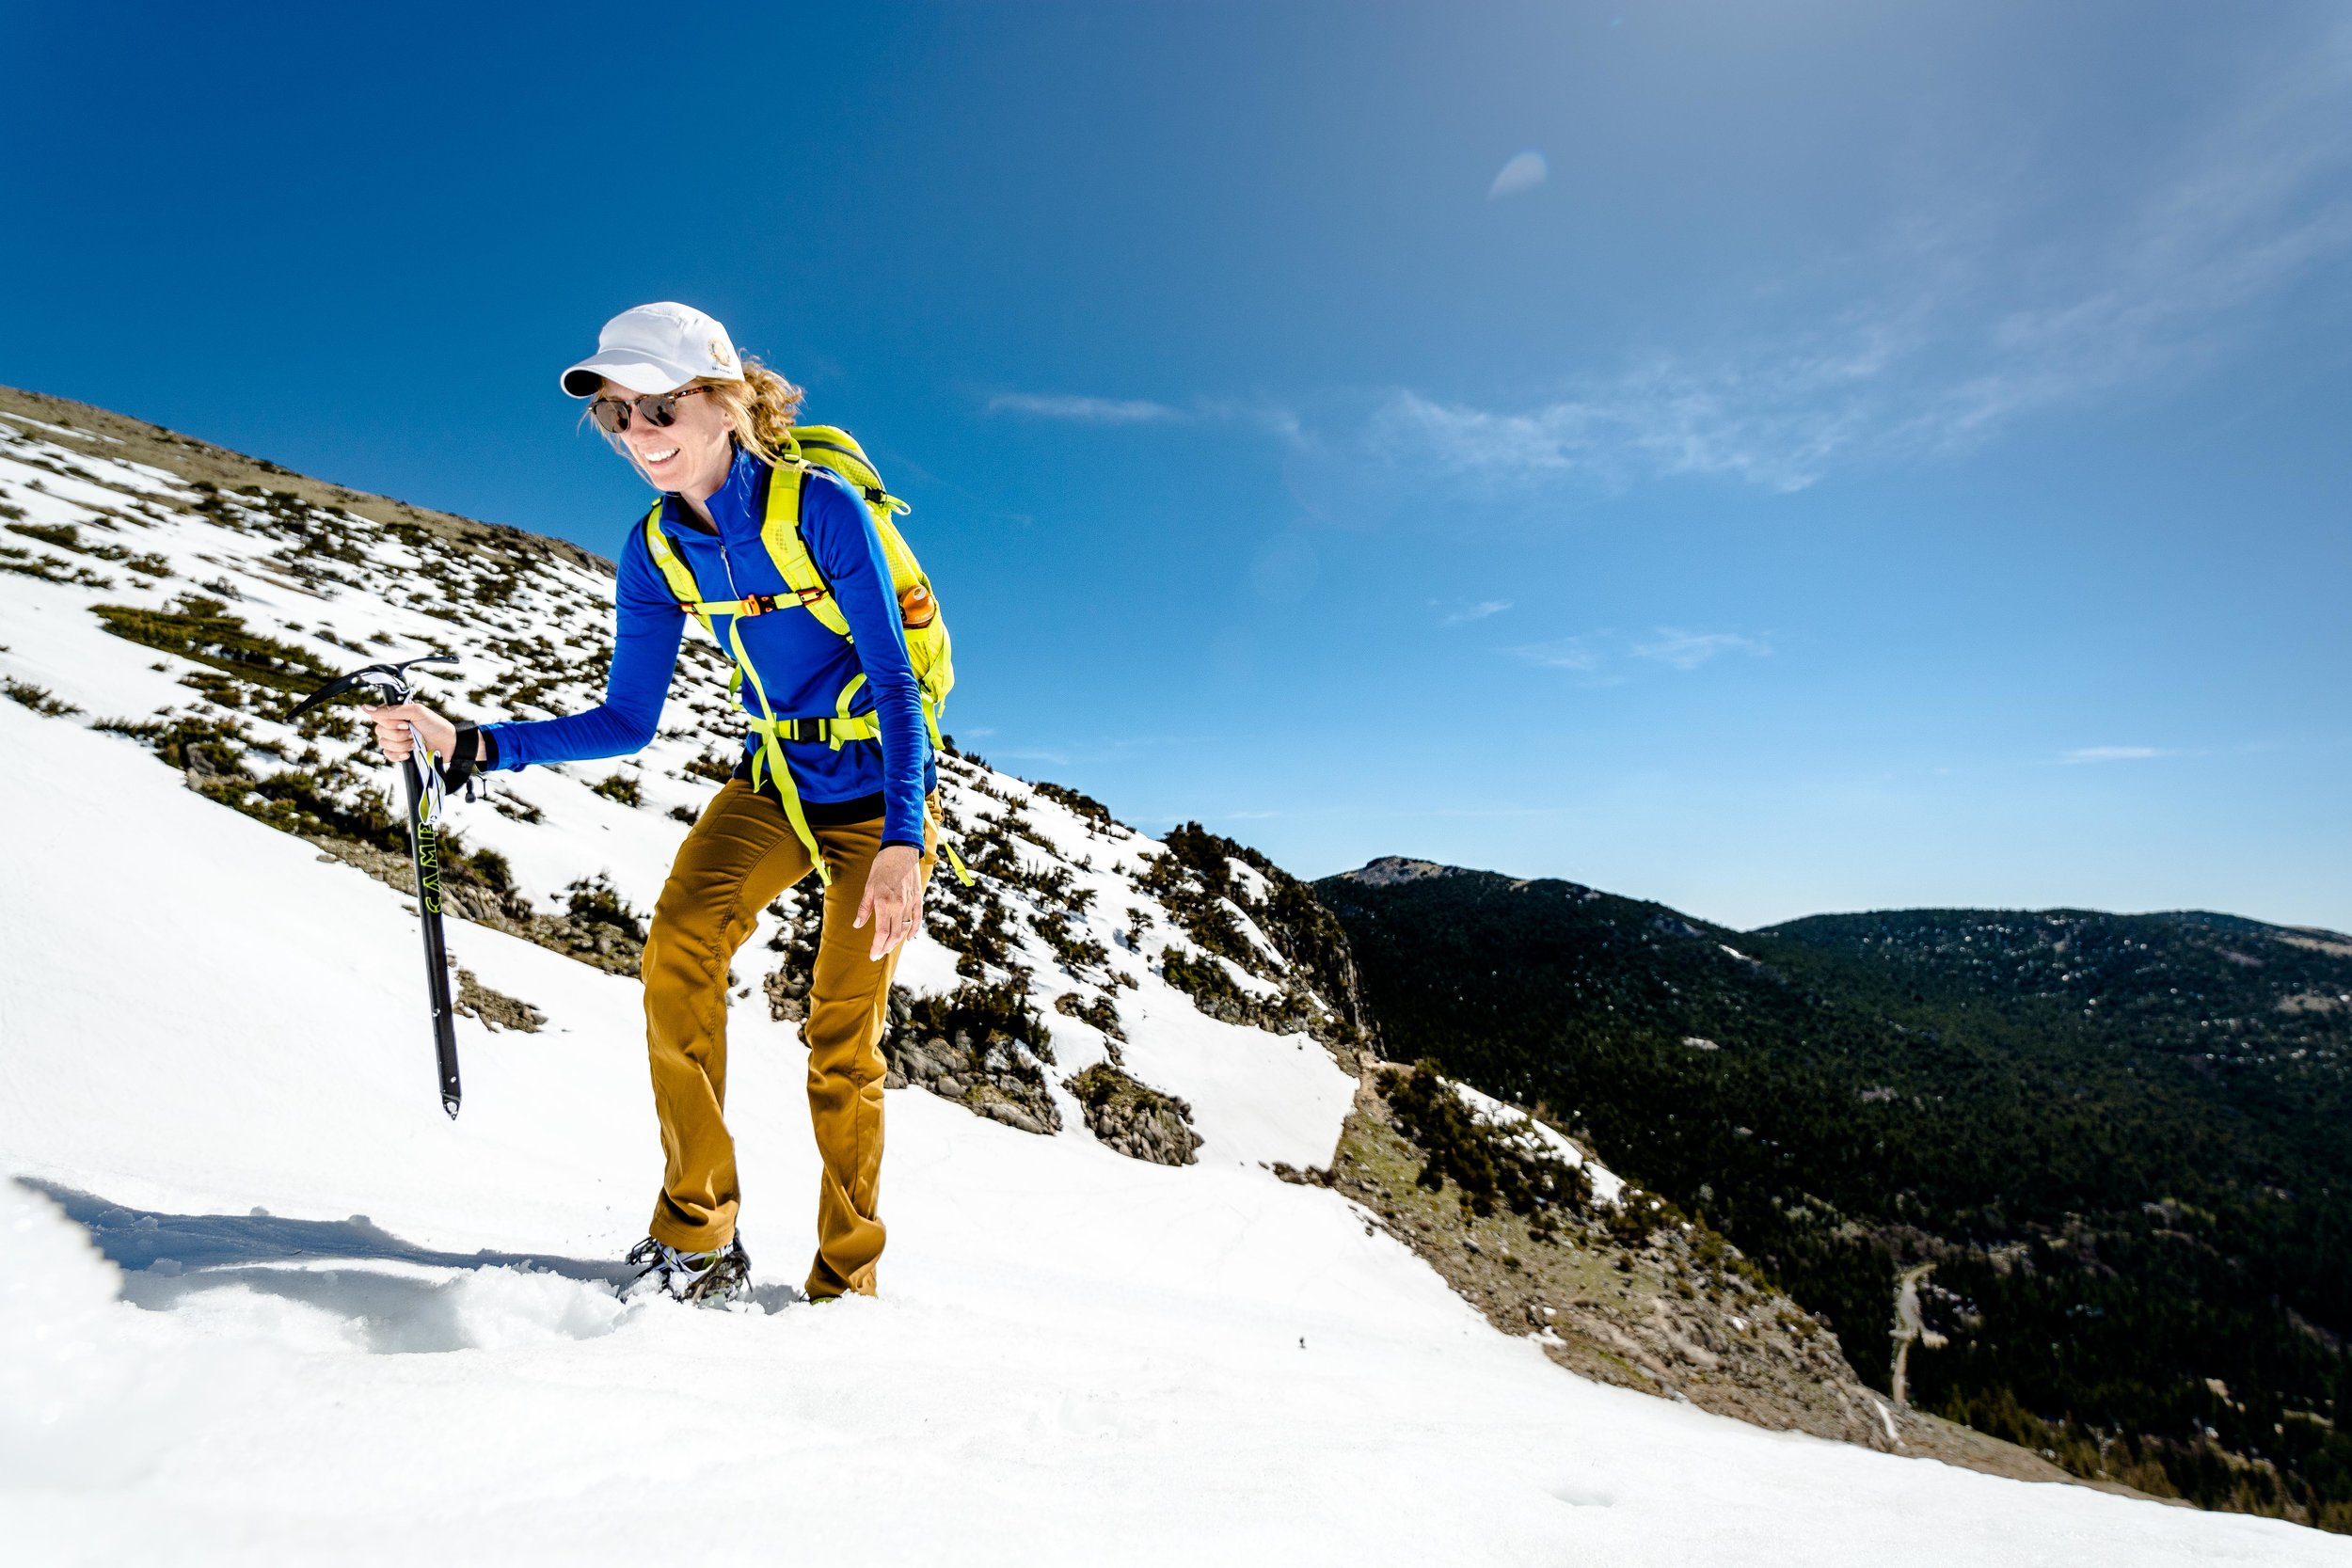 Summiting the Steeps on St. Mary's